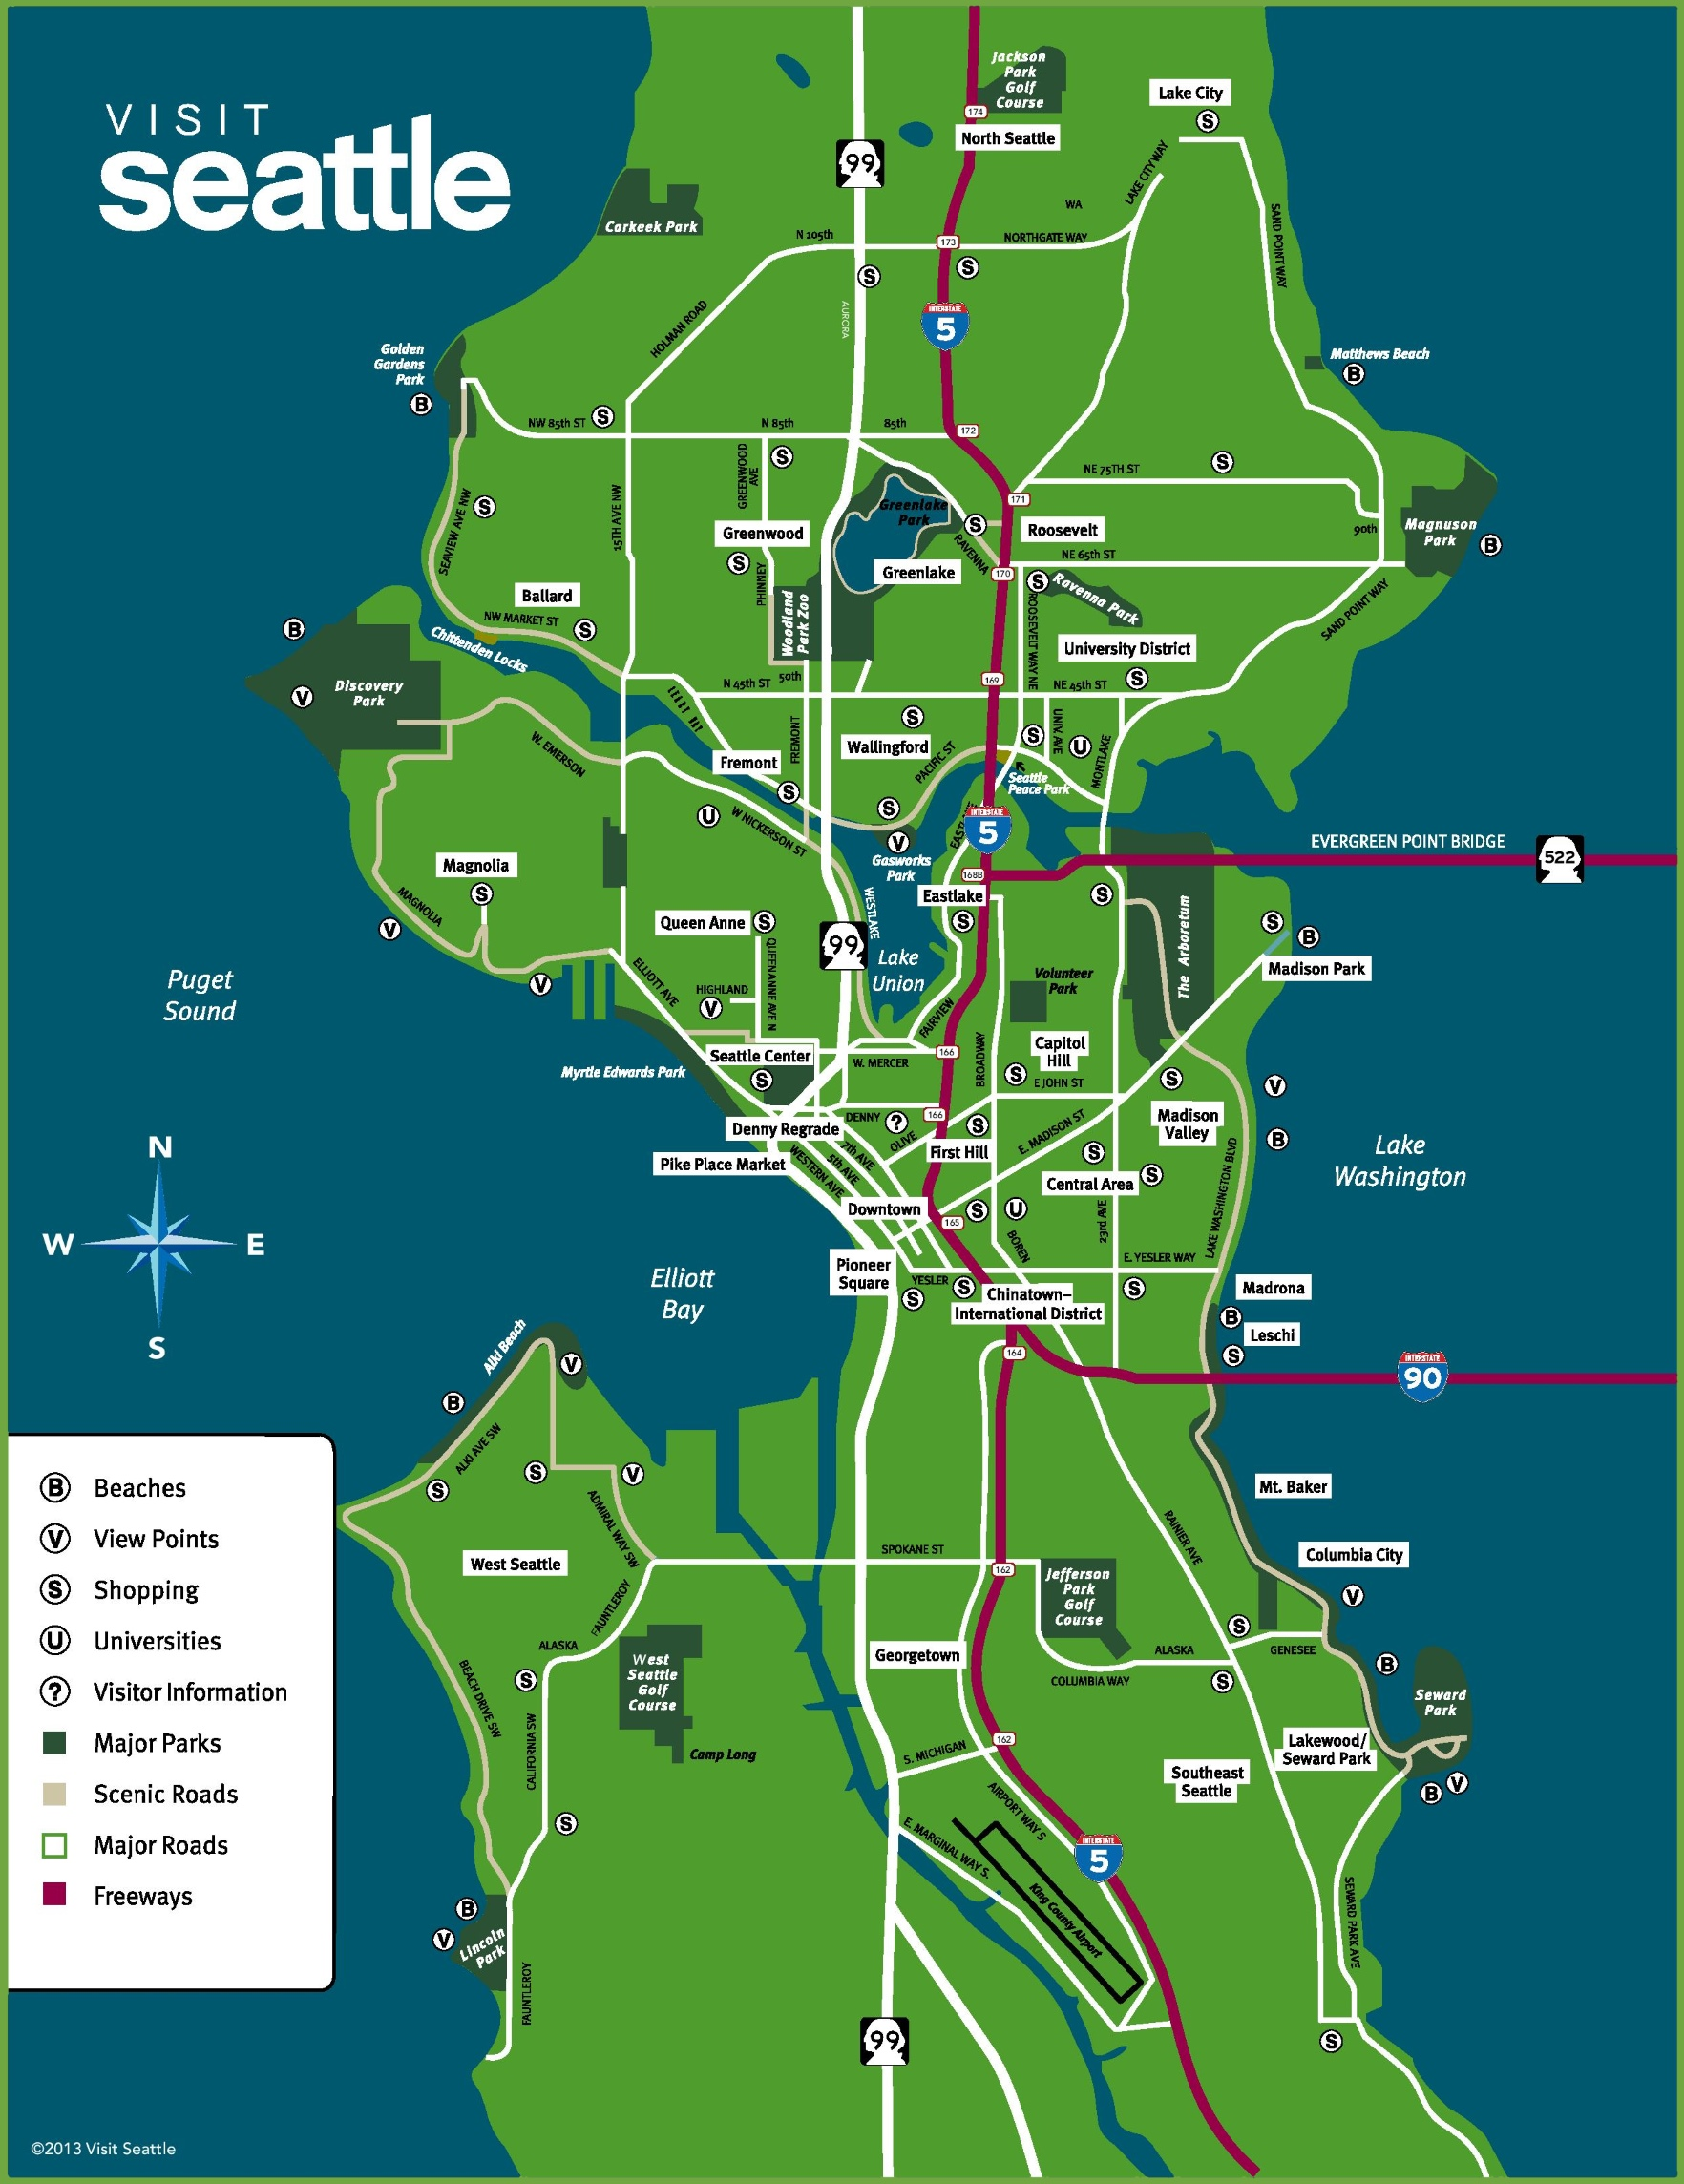 Seattle Maps | Washington, U.S. | Maps of Seattle